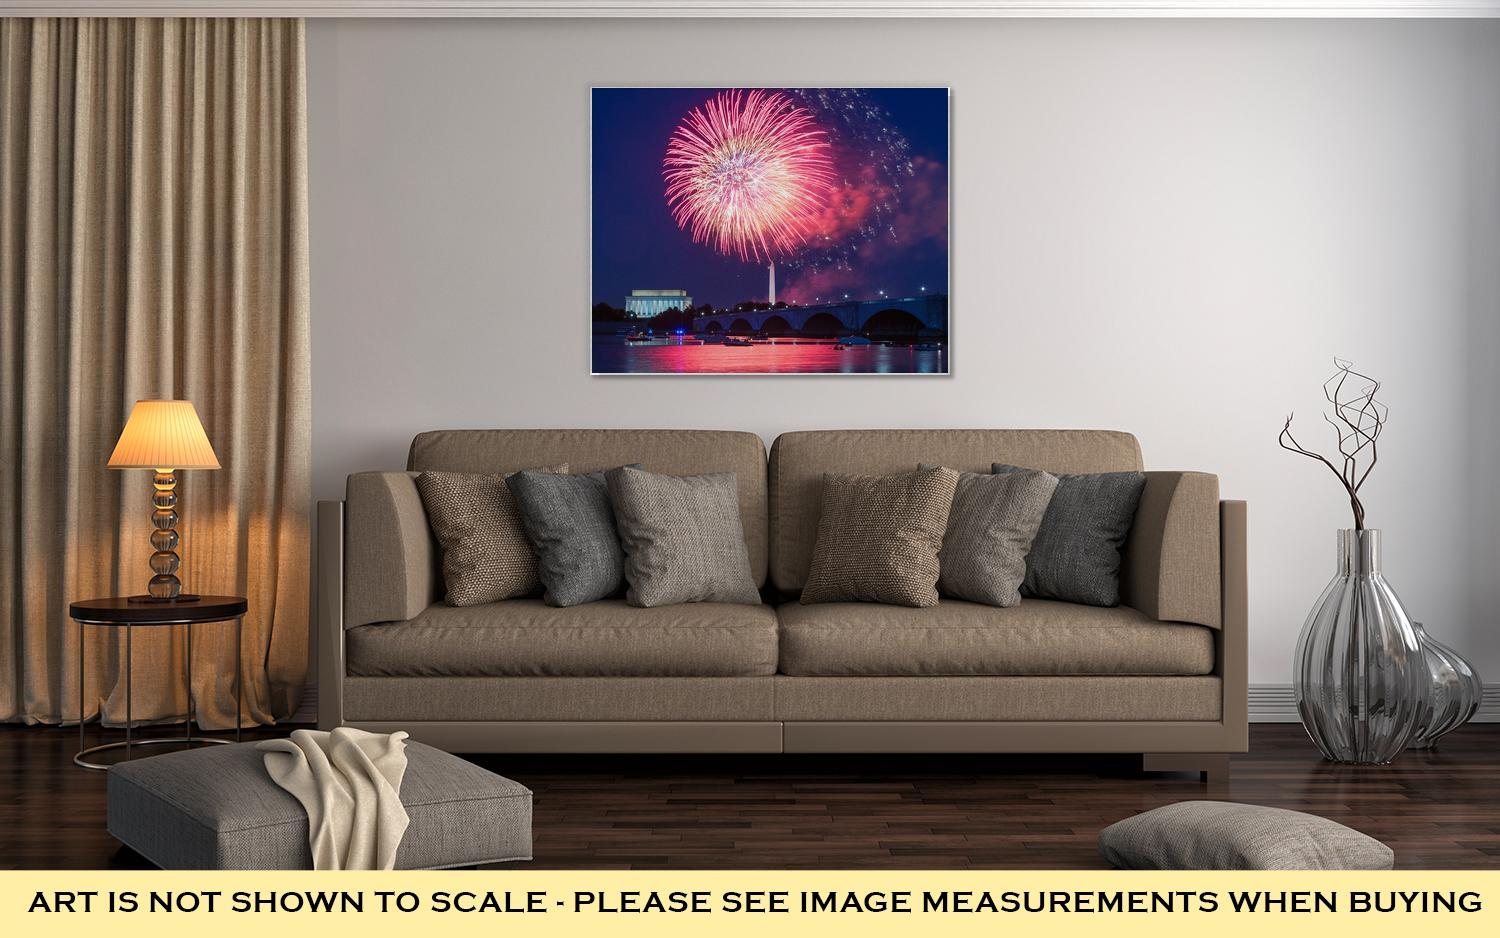 Gallery Wrapped Canvas, Lincoln Memorial Fireworks Over Washington Dc